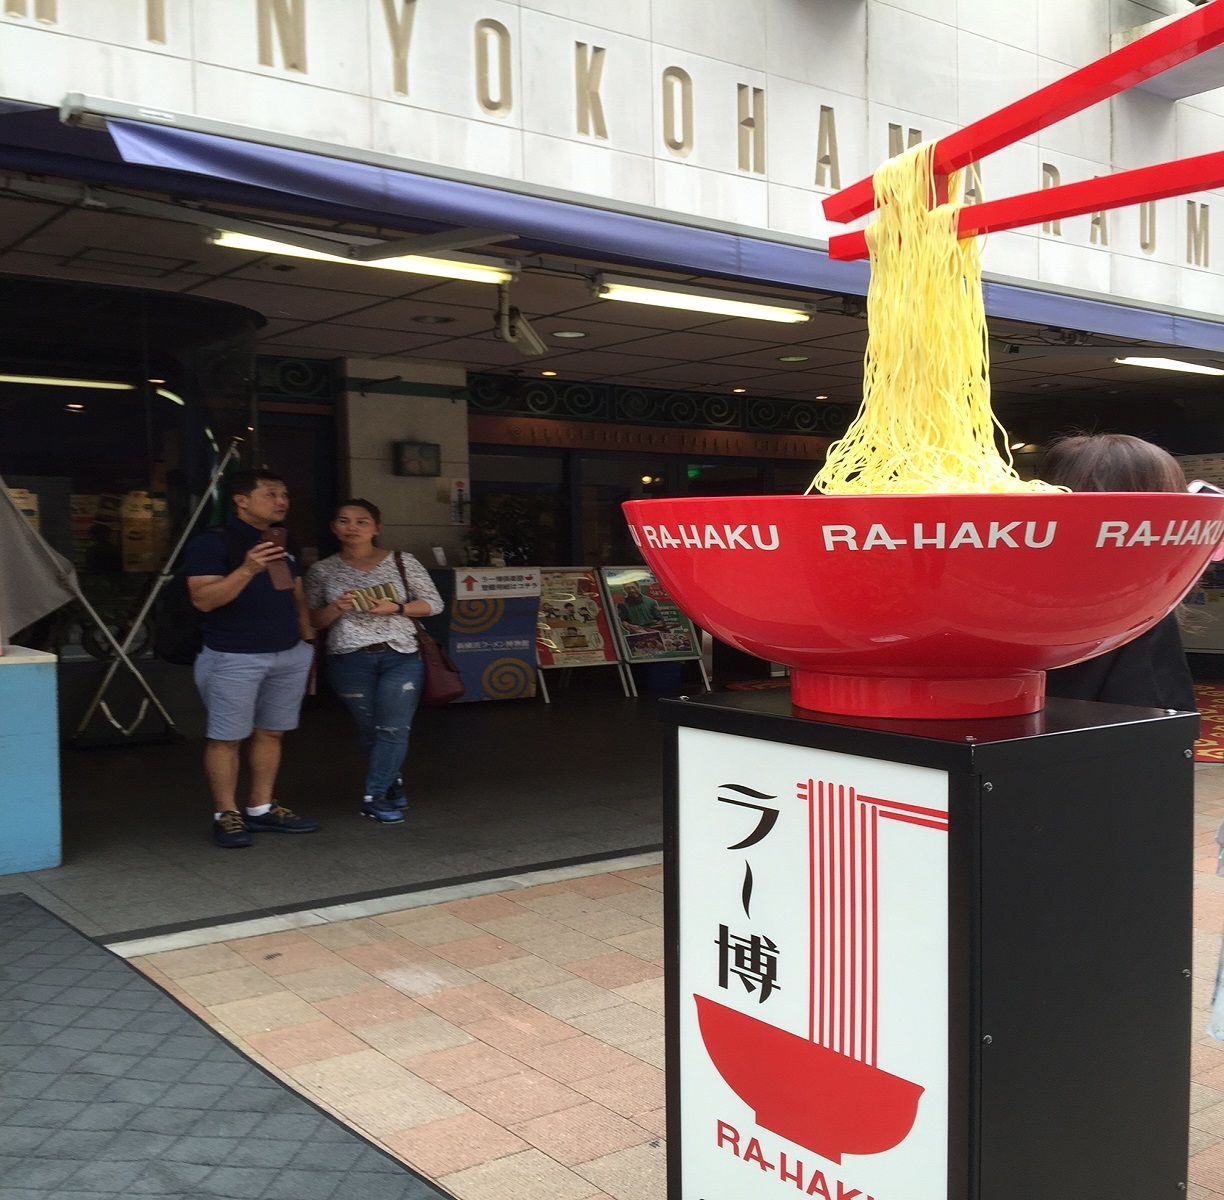 Enjoy 3 kinds of ramen noodles in Yokohama